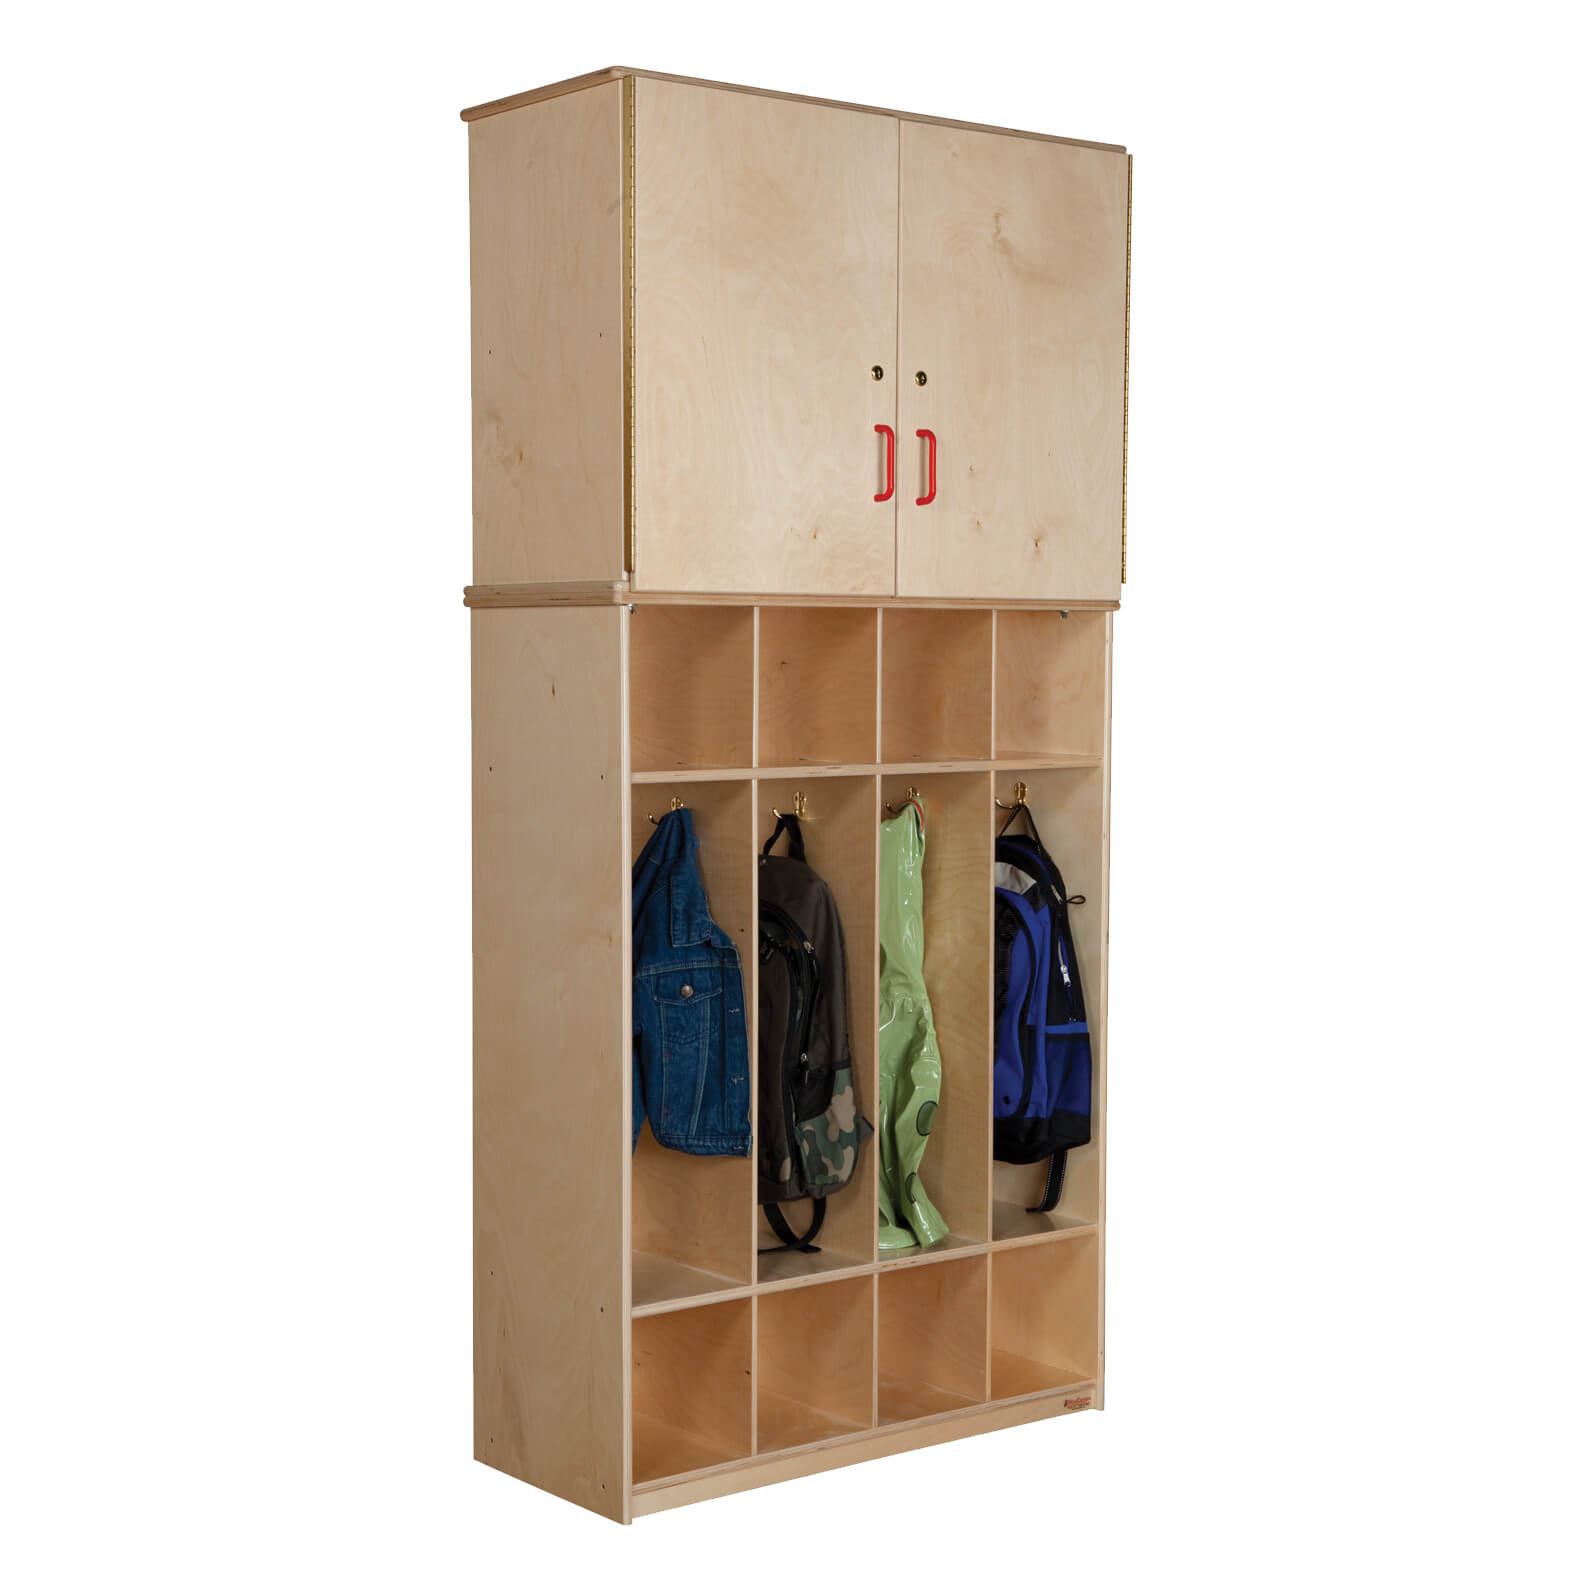 This is an interesting hybrid unit with kids' height lockers topped with a storage cabinet. It's not the most aesthetically pleasing, but it's great for storage. It's very tall standing 74.5 inches tall.